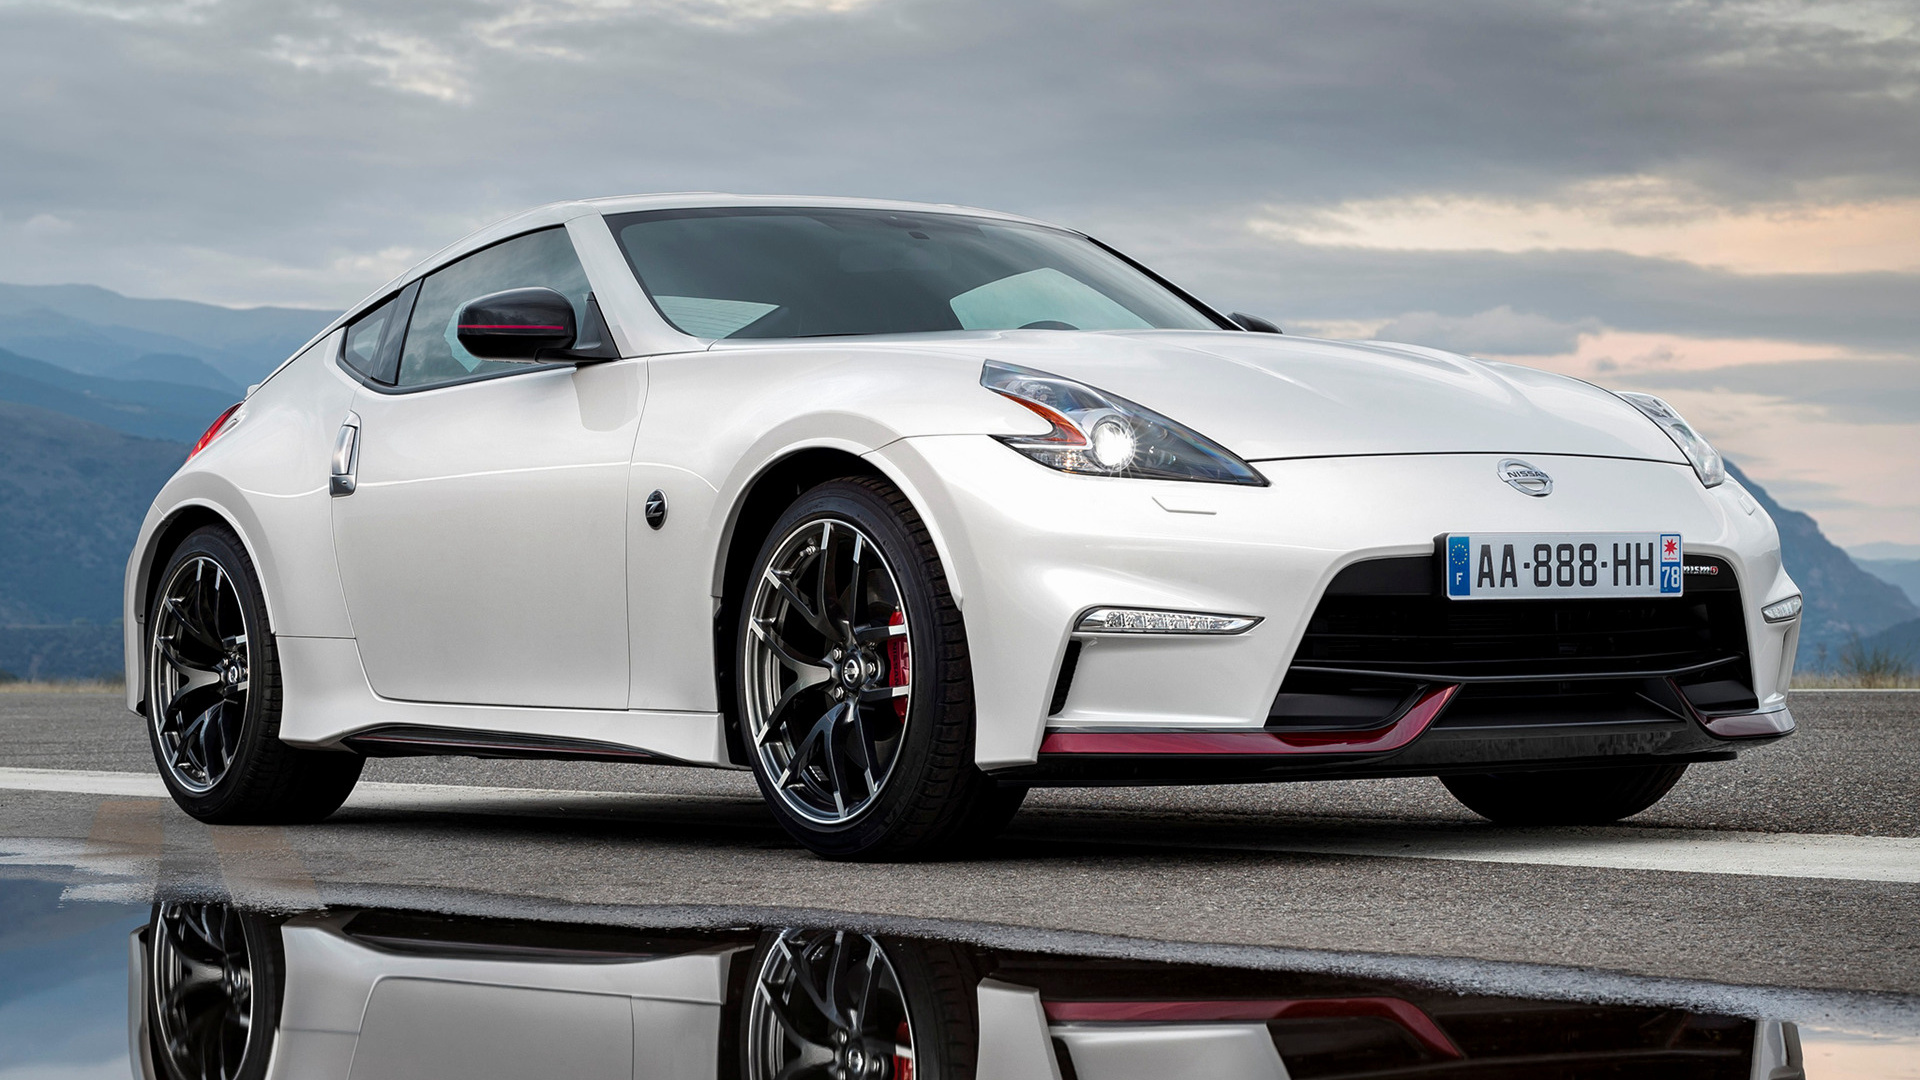 2014 Nissan 370z Nismo Hd Wallpaper Background Image 1920x1080